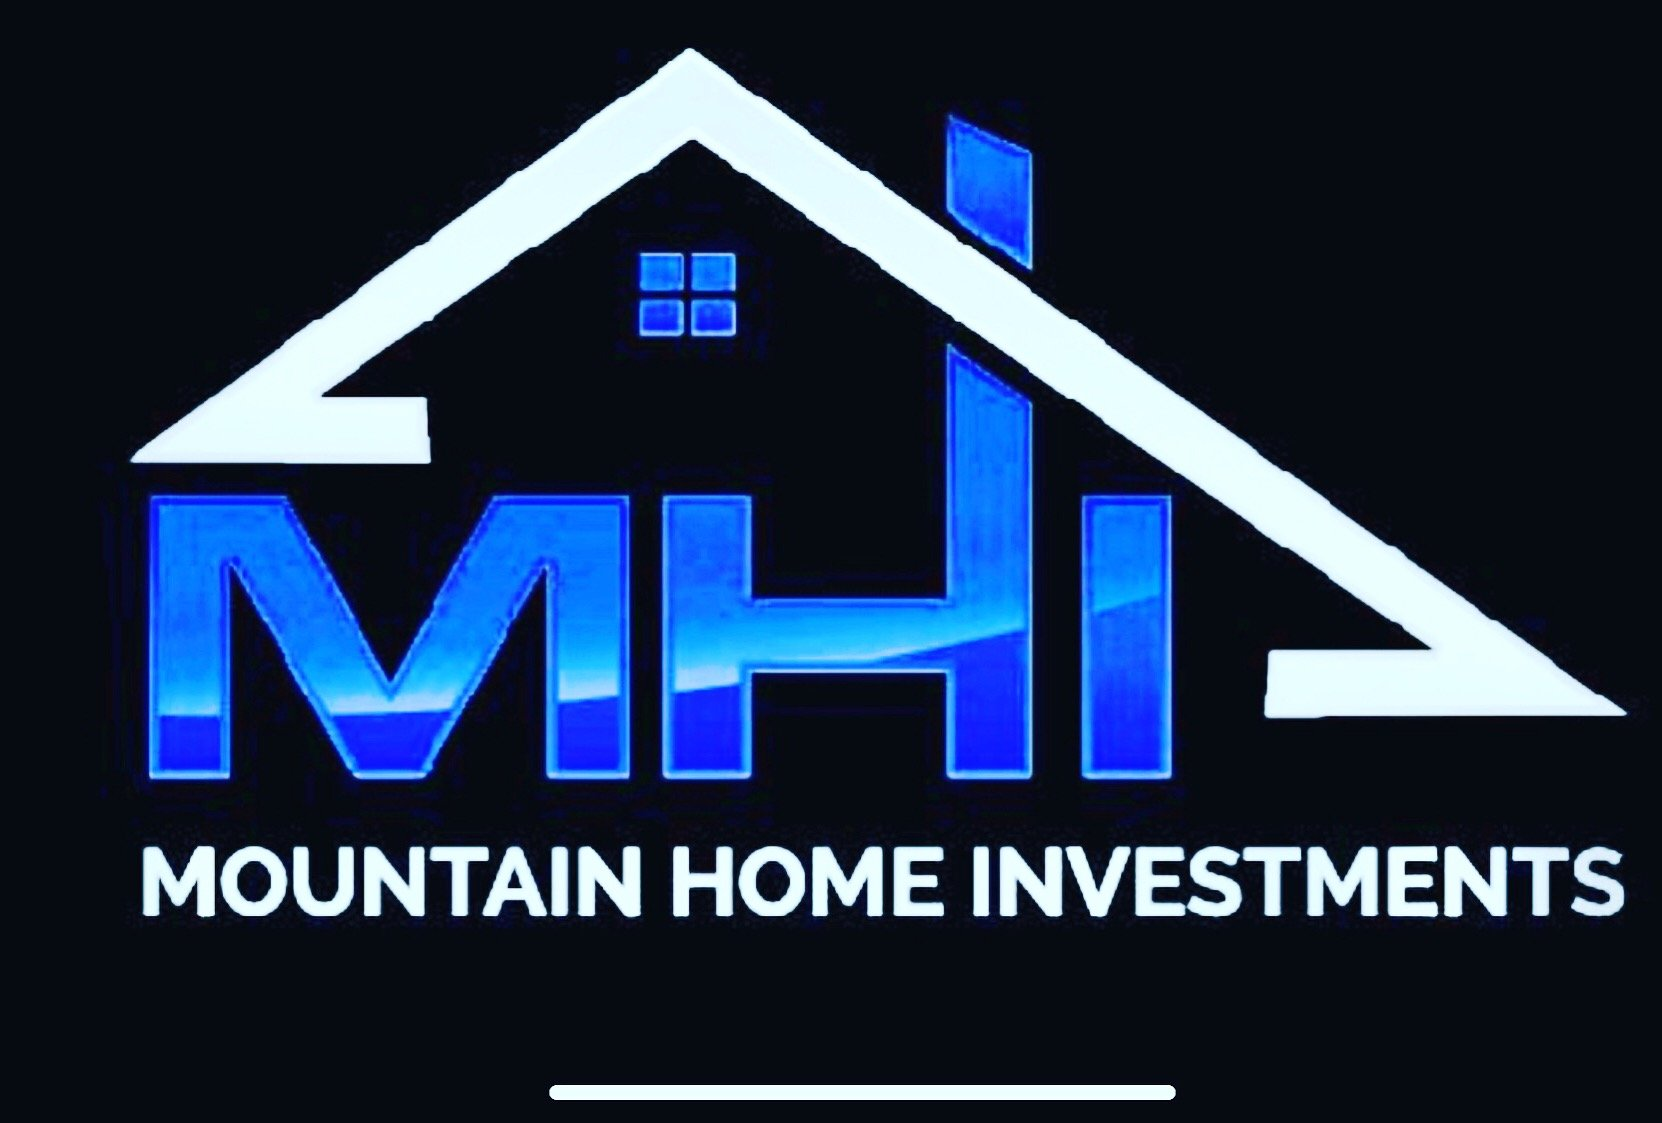 Mountain Home Investments logo